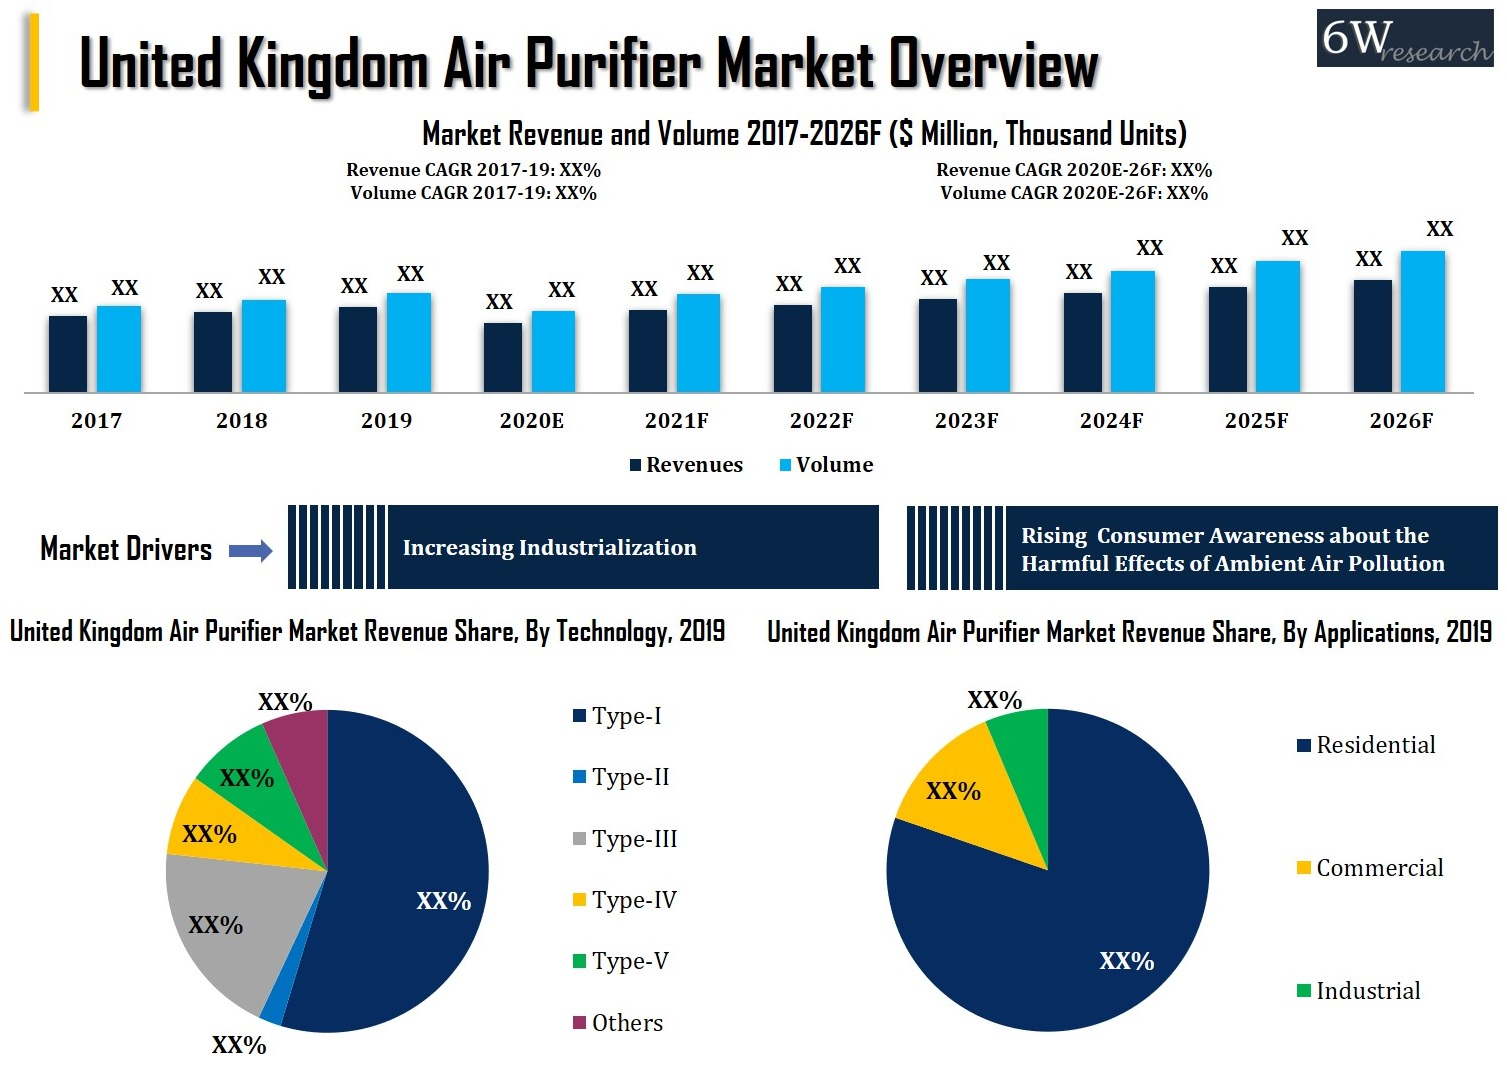 United Kingdom Air Purifier Market